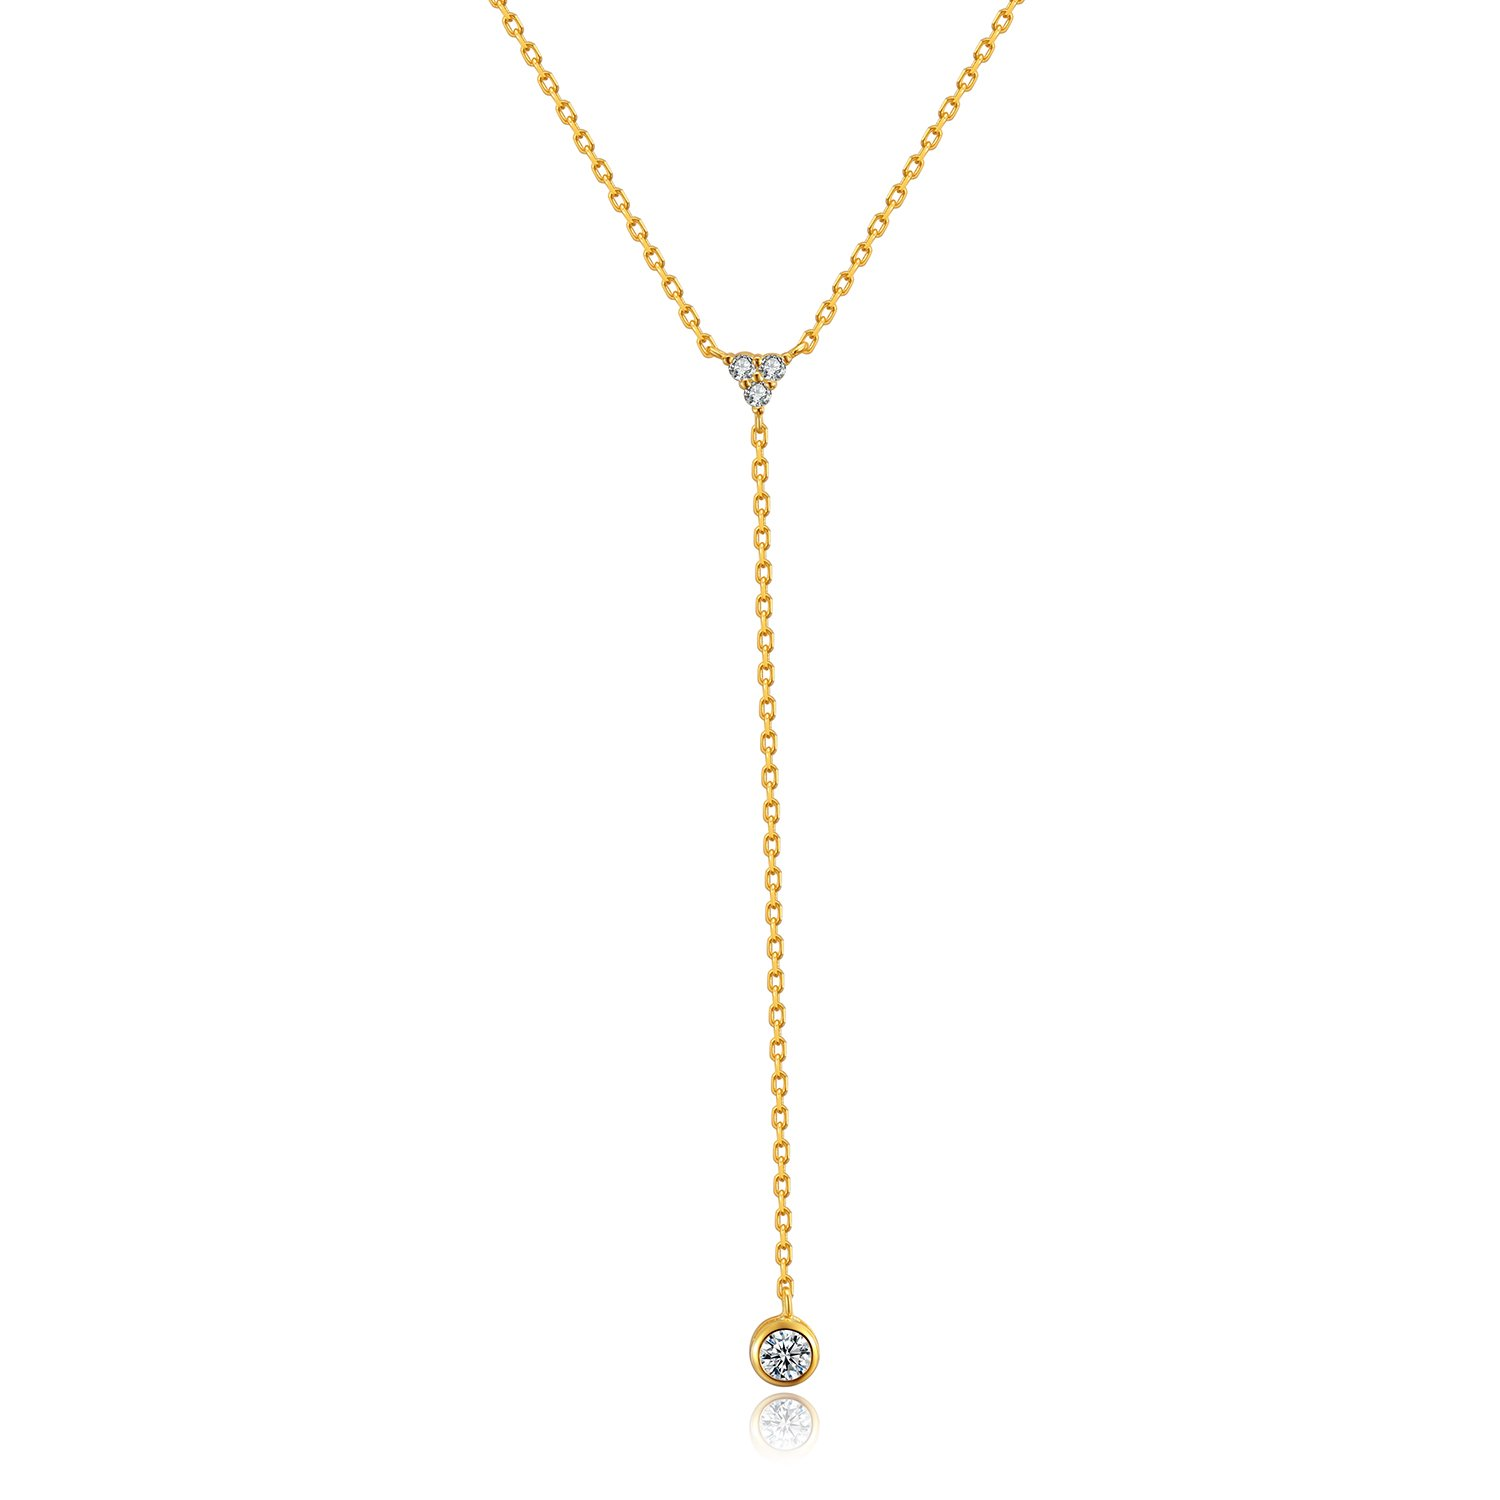 Metzakka Sterling Silver Lariat Necklace, 18k Gold Plated Chic Minimalist Drop Y Chain Necklace for Women